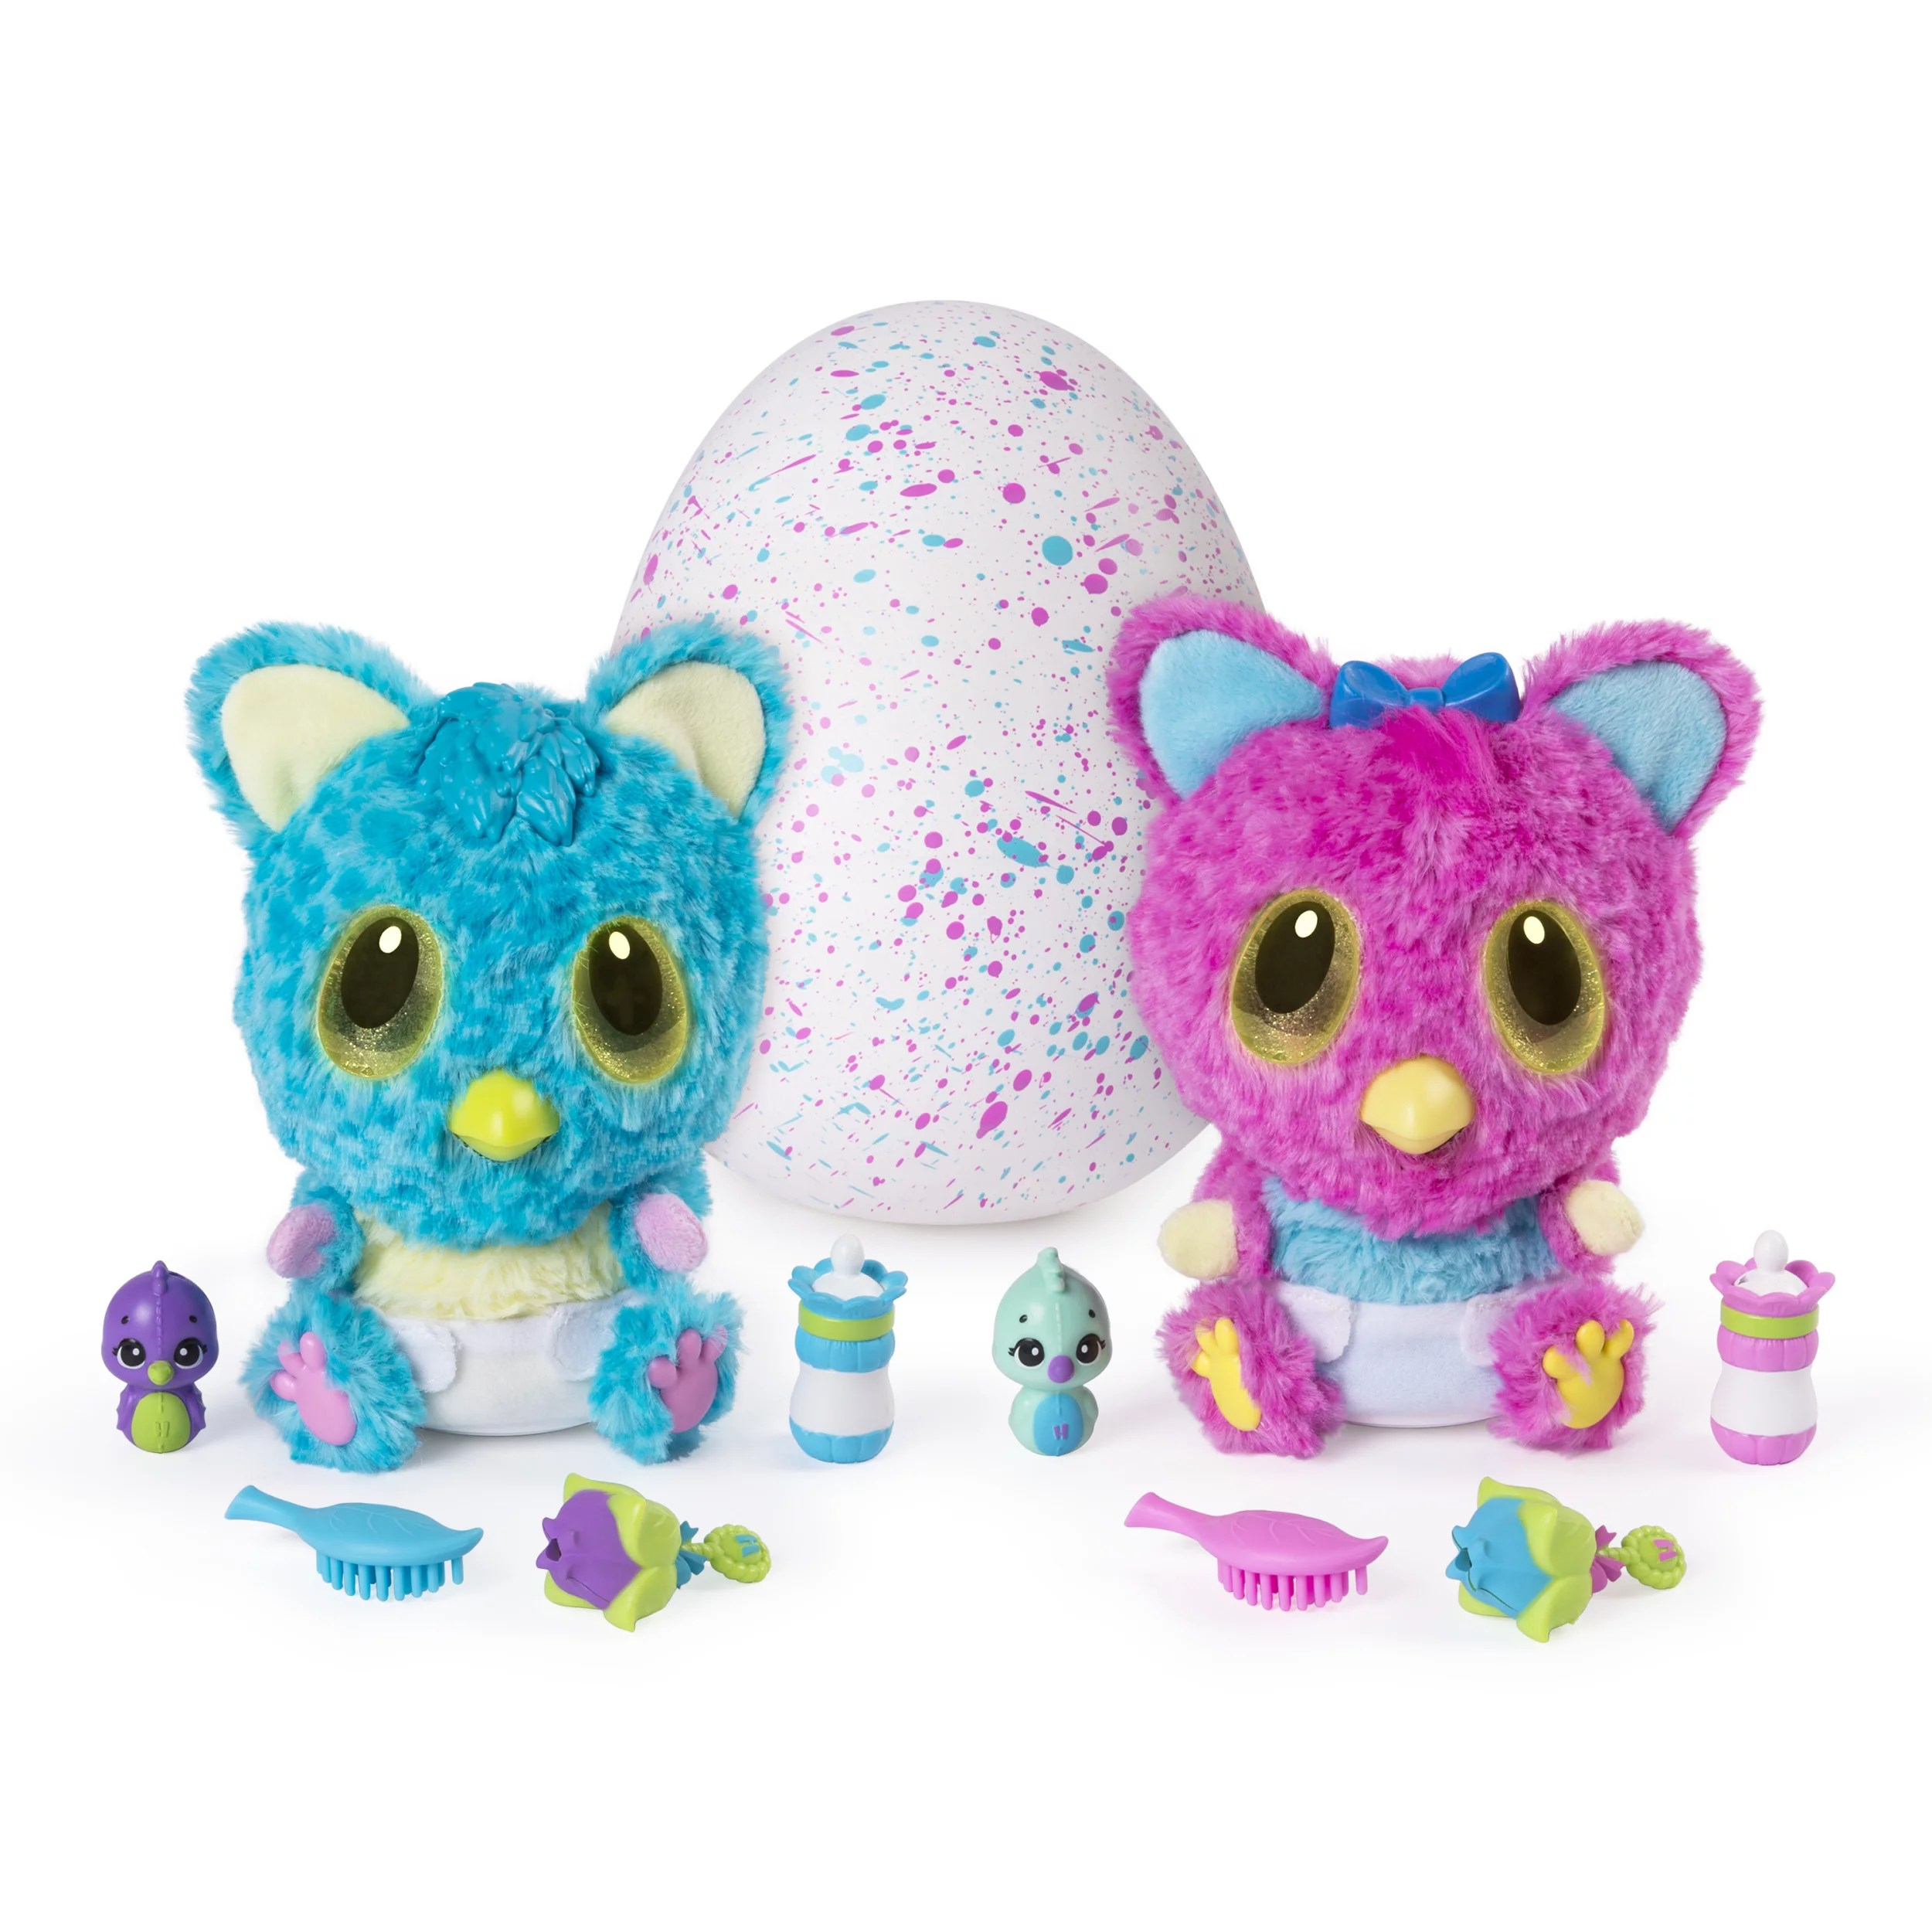 Babies Interactive Toys Hatchimals Hatchibabies Cheetree Hatching Egg With Interactive Toy Pet Baby Styles May Vary For Ages 5 And Up Walmart